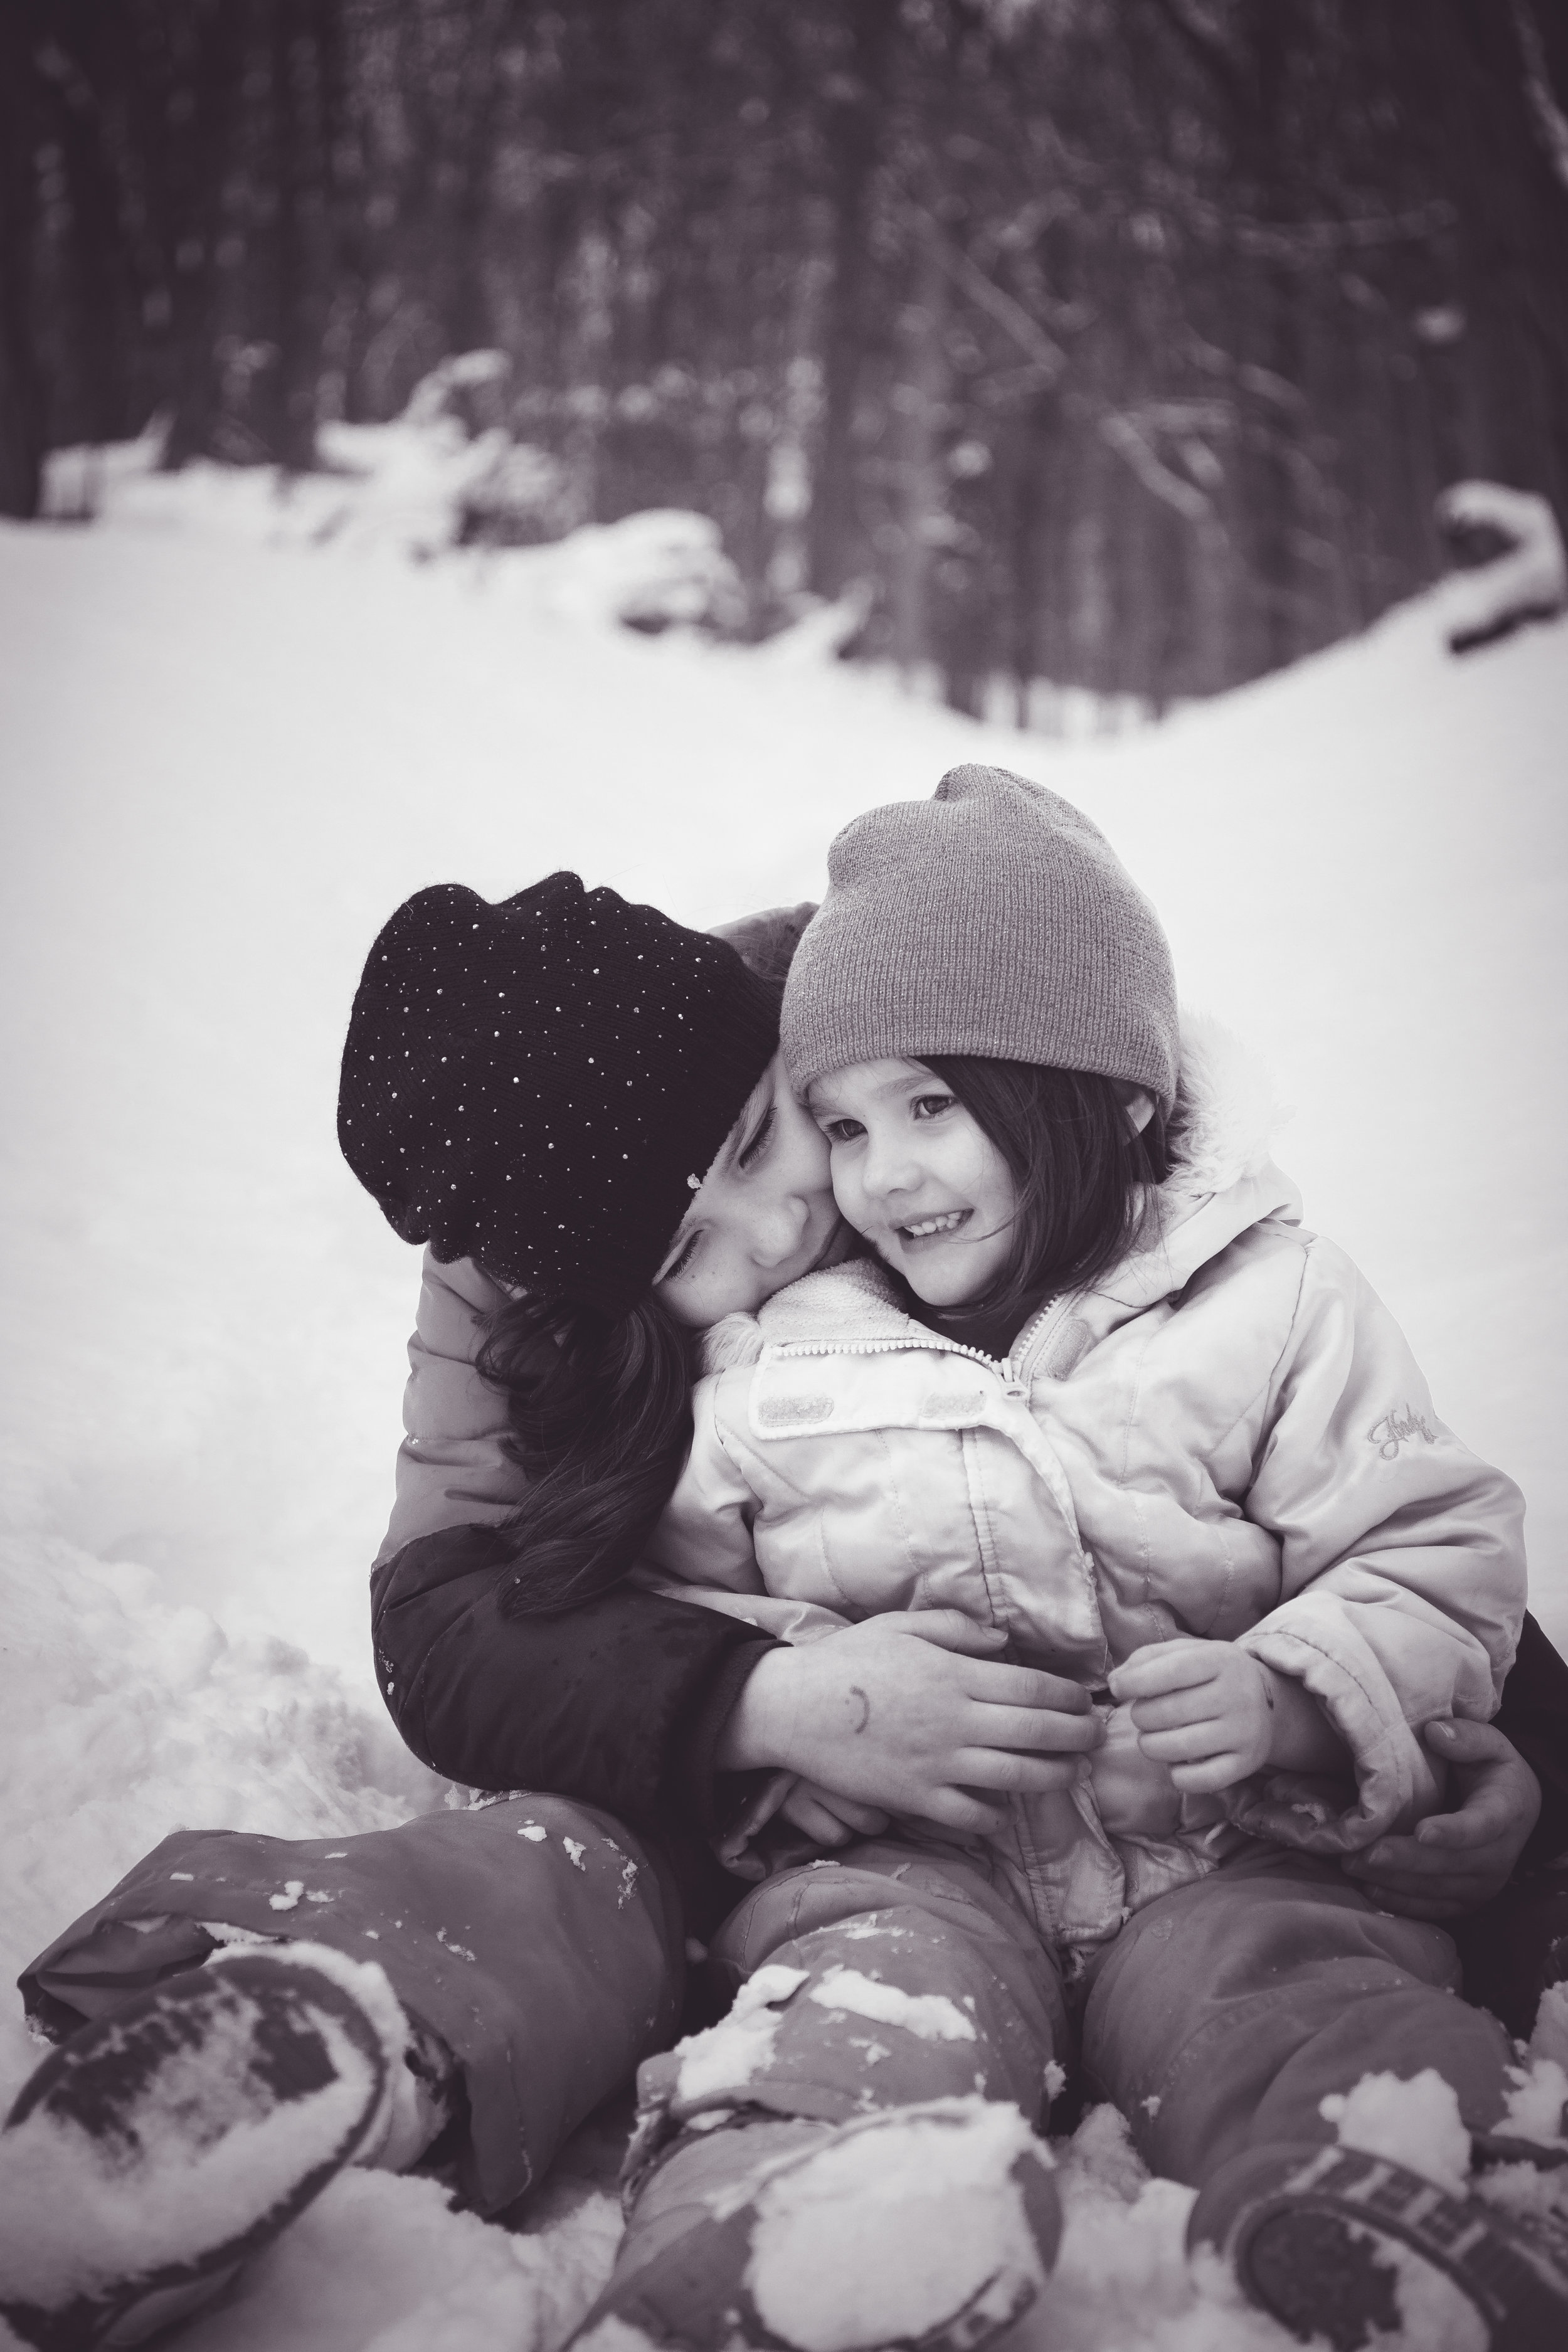 Ristau Girls Snow-41.jpg